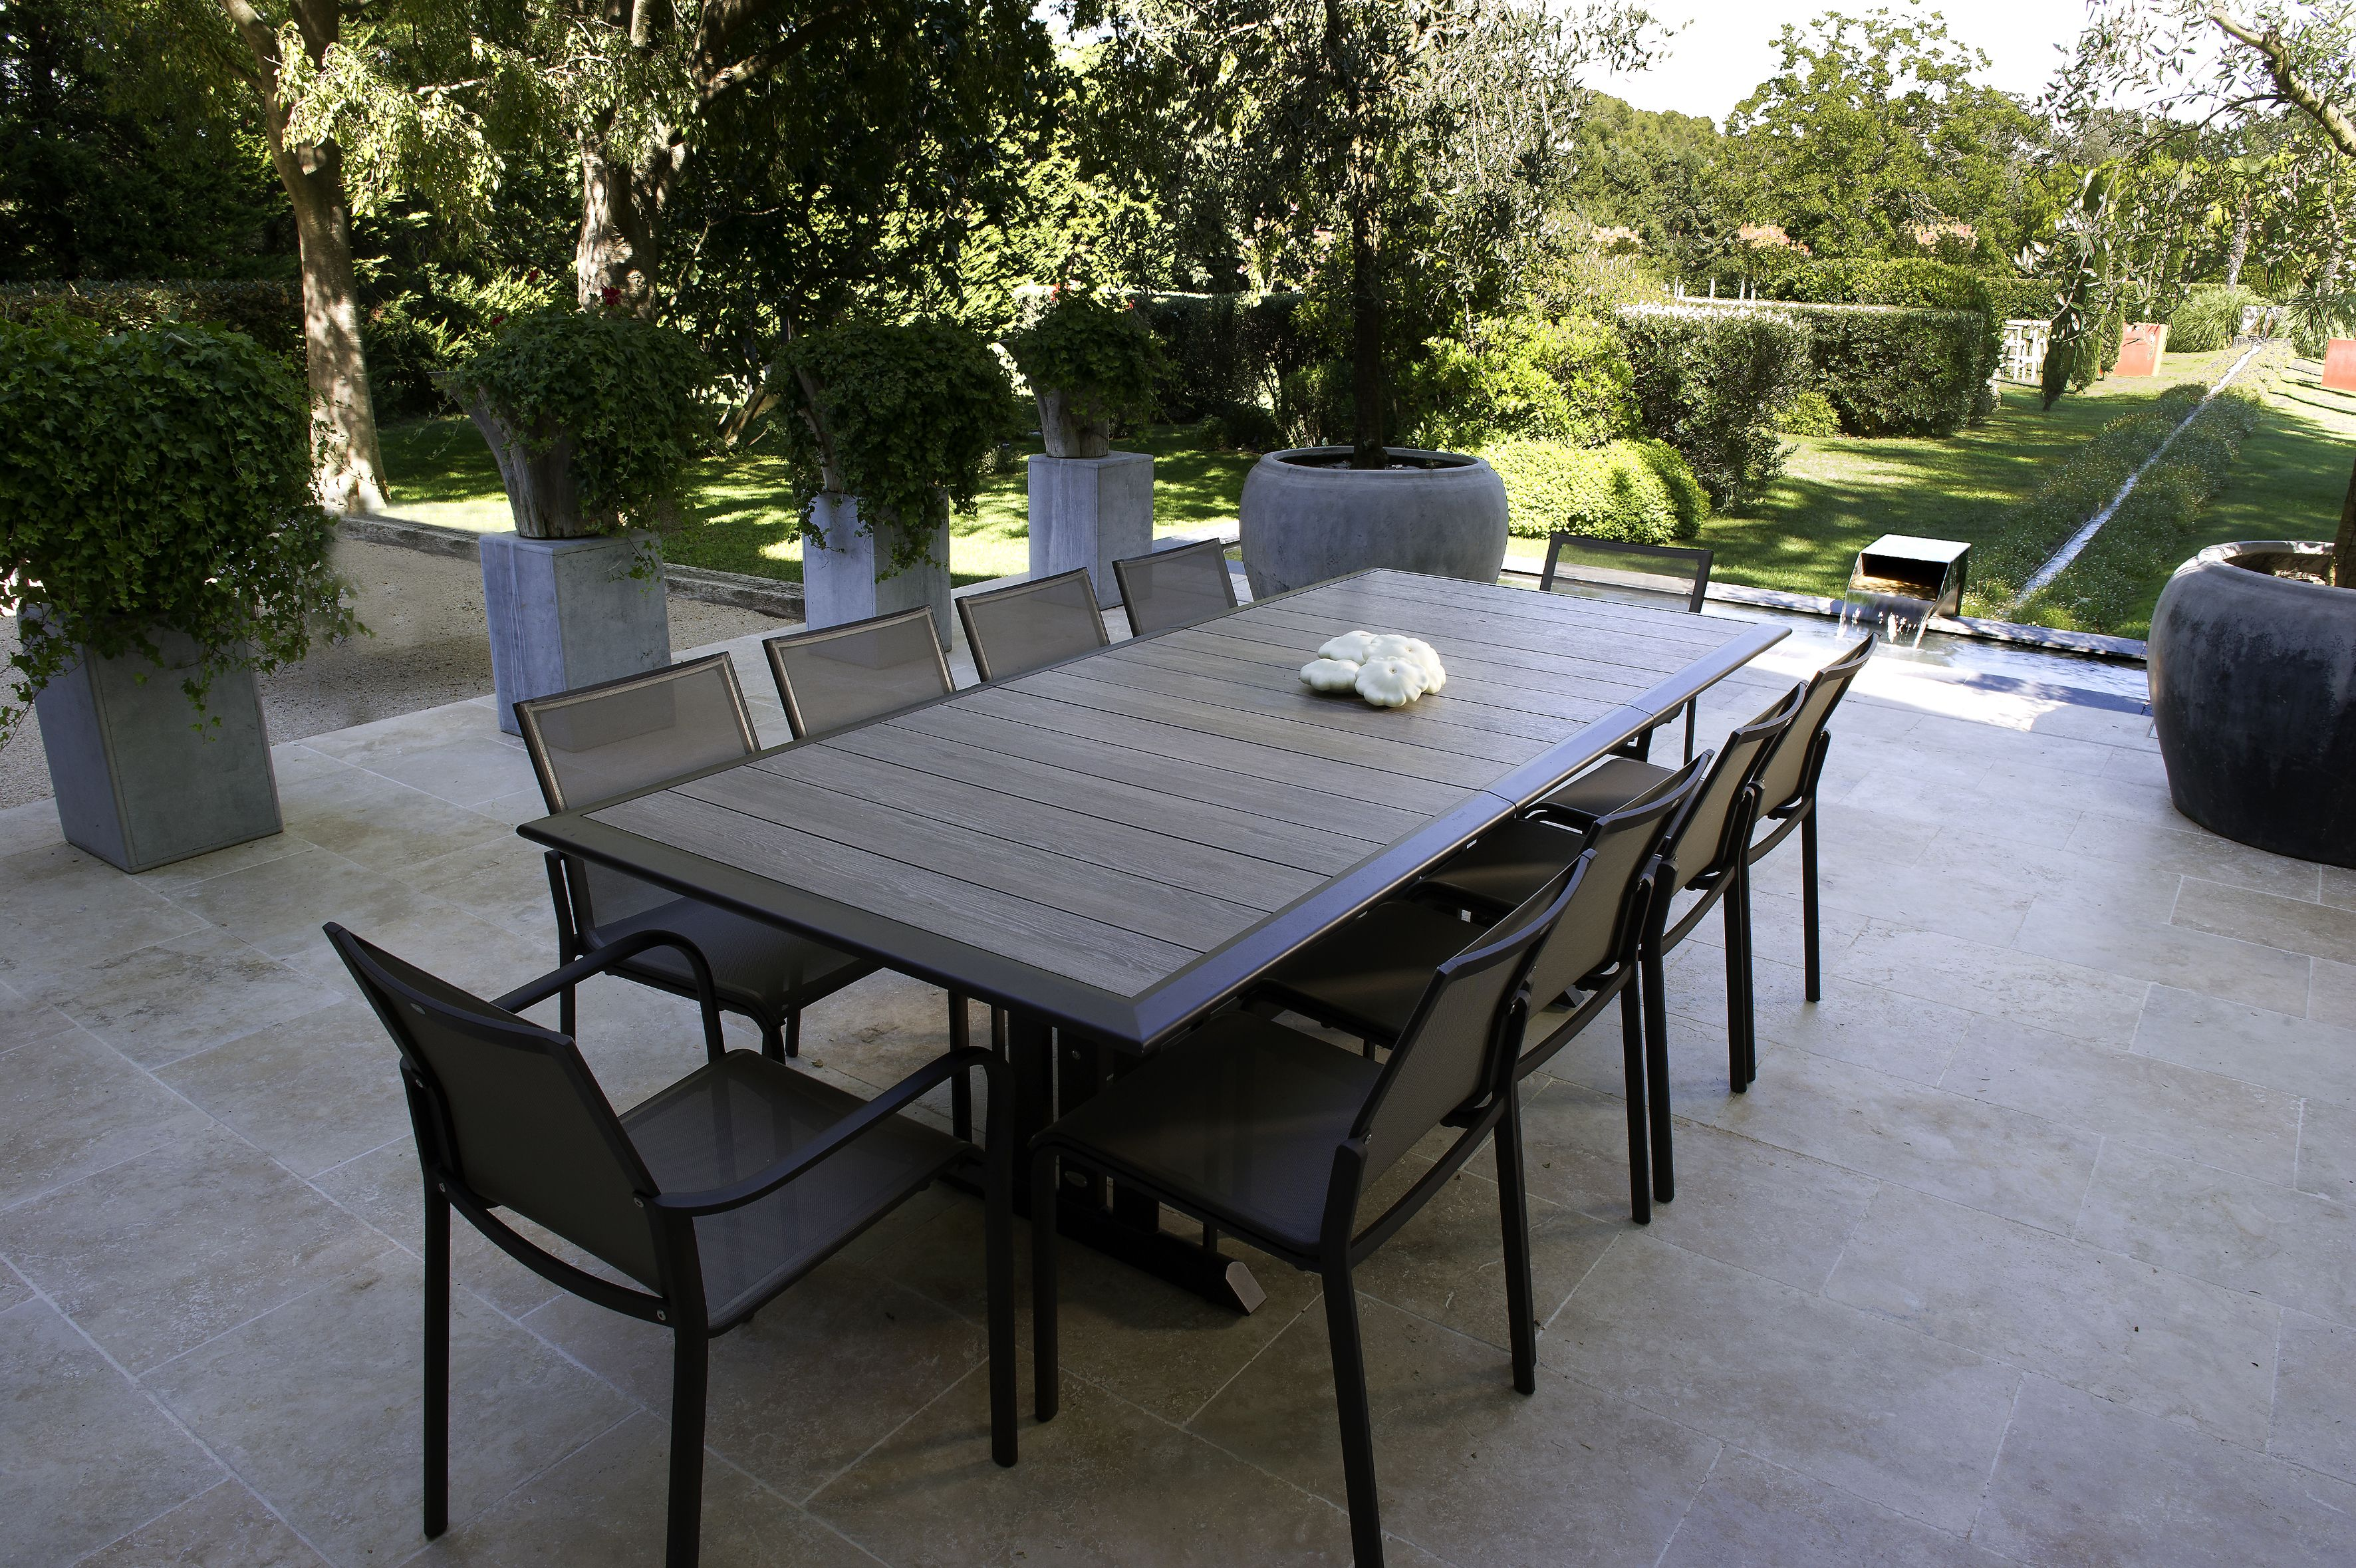 Patio Outdoor Tables Dining Sets Outdoor Living Decor Outdoor Patio Table Outdoor Tables